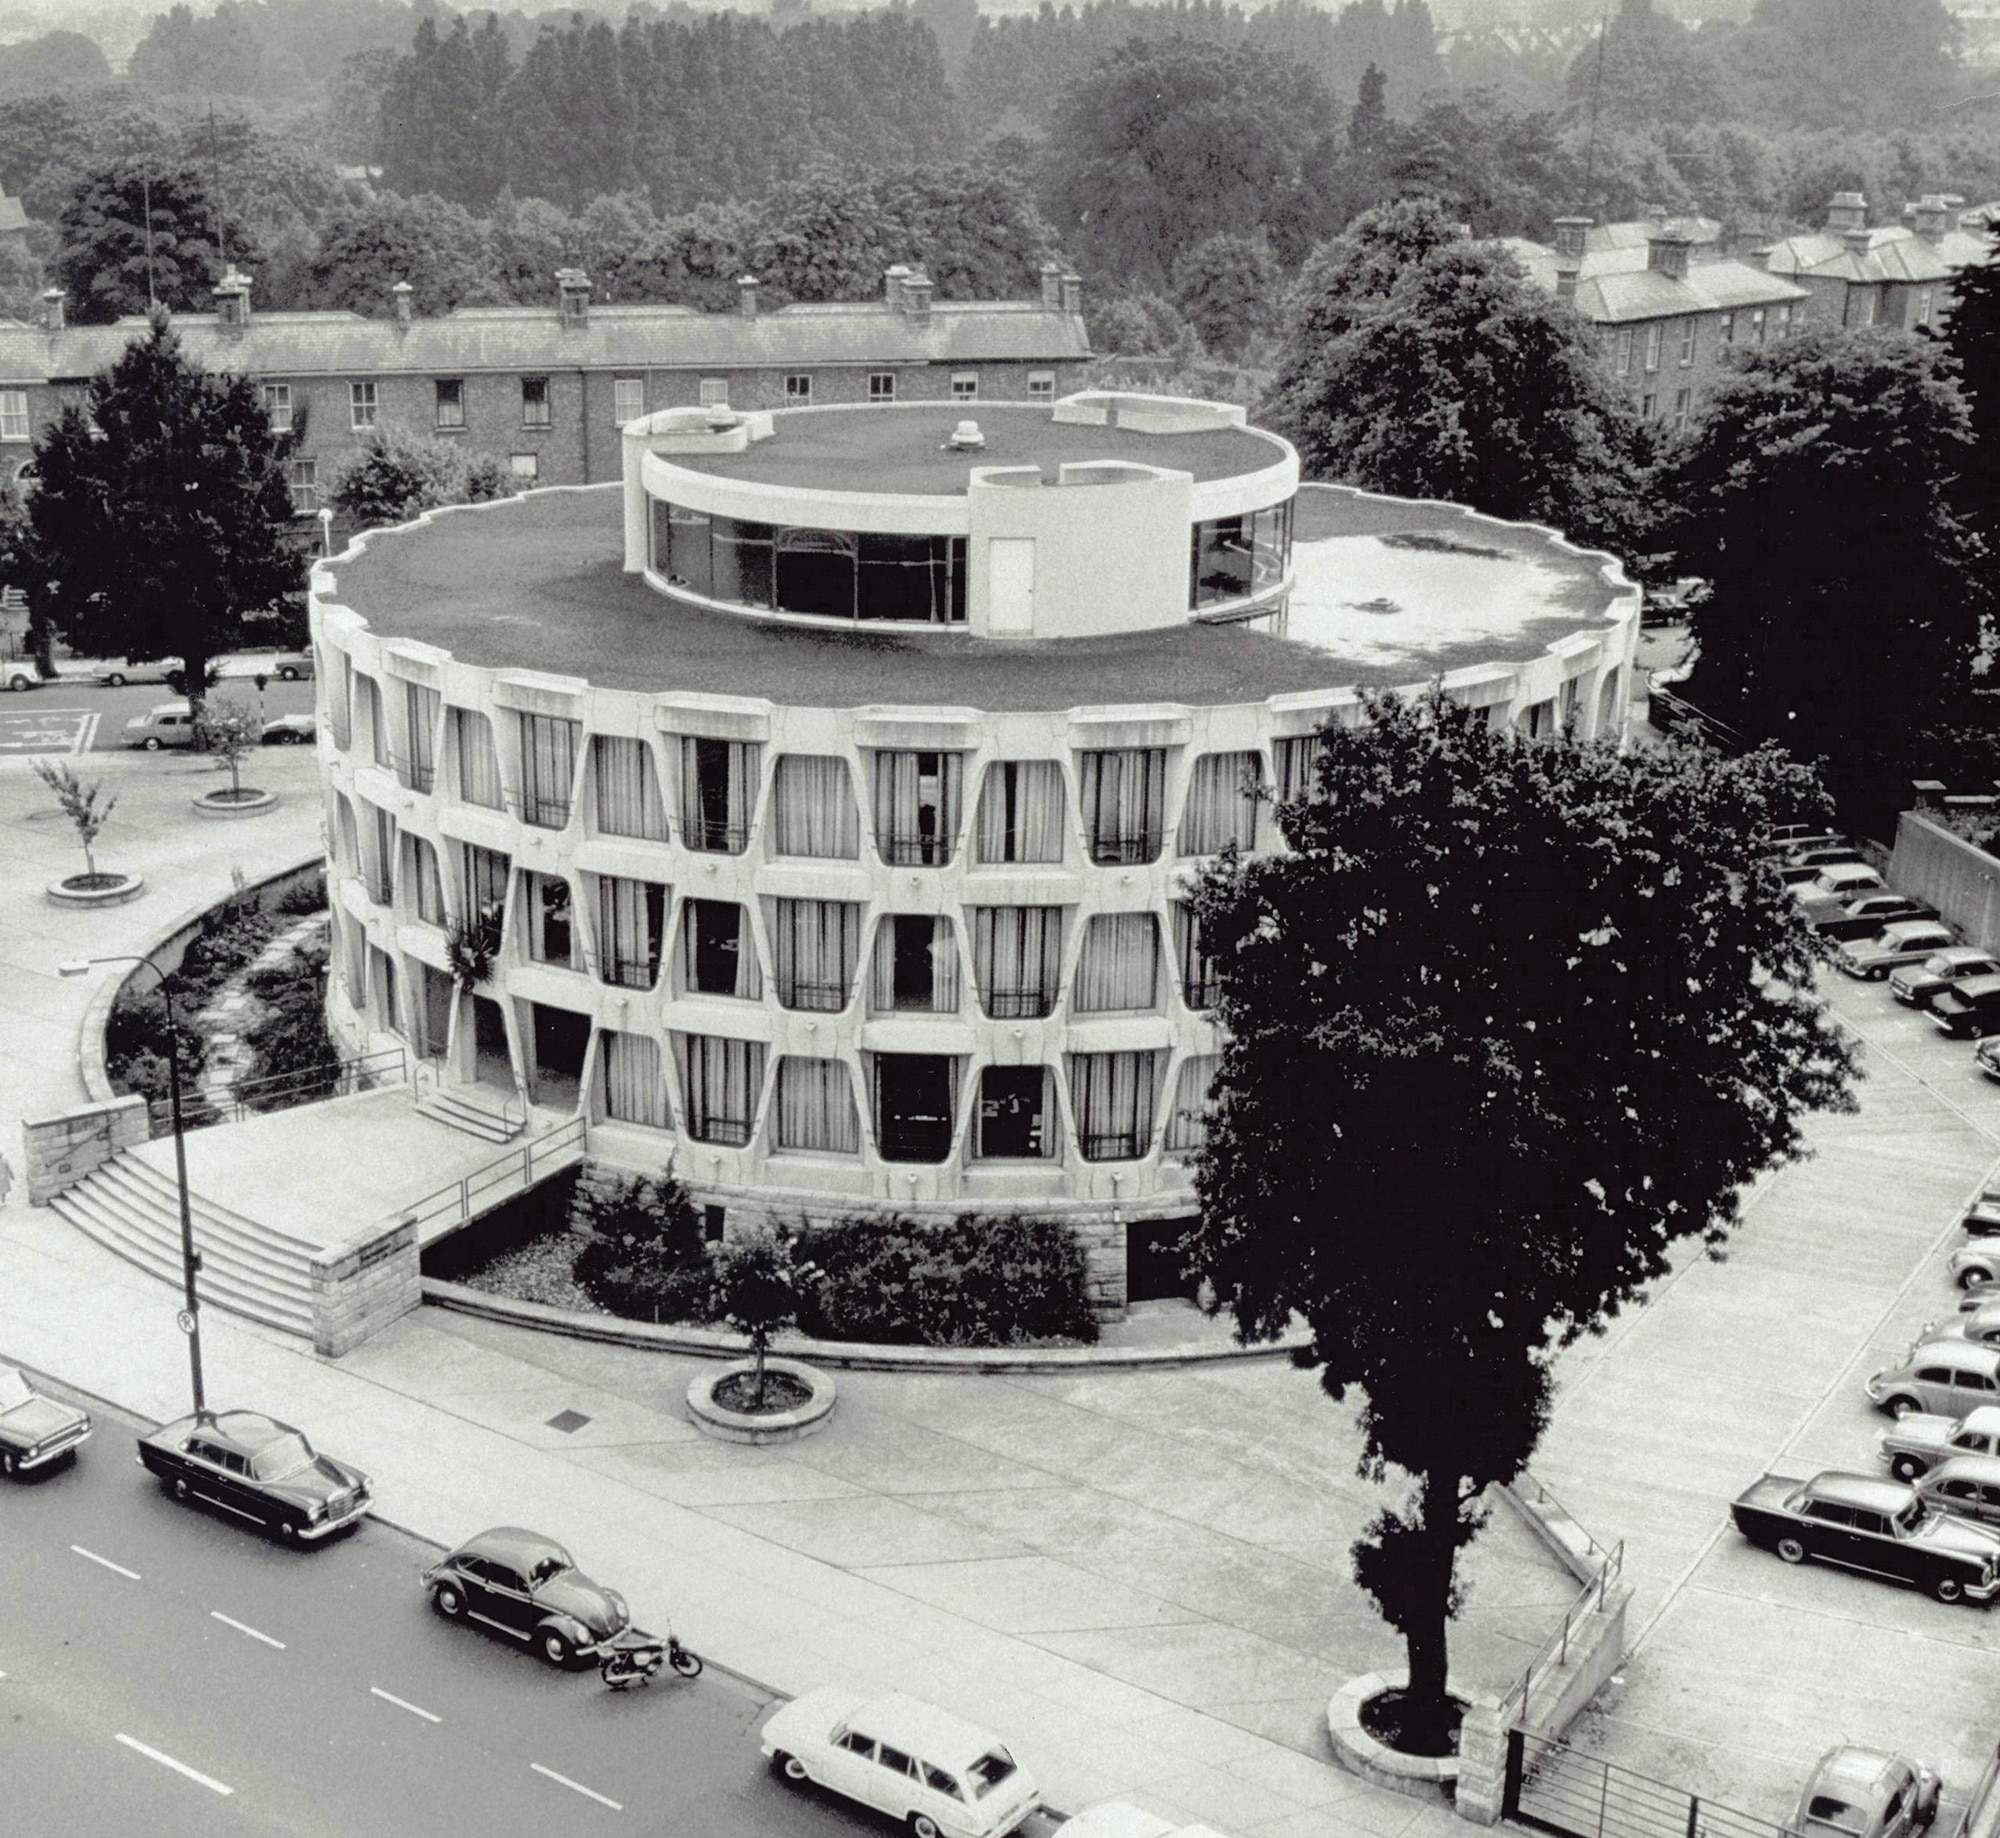 Photo showing U.S. Embassy Dublin, Ireland in the 1950's. [Department of State/OBO]